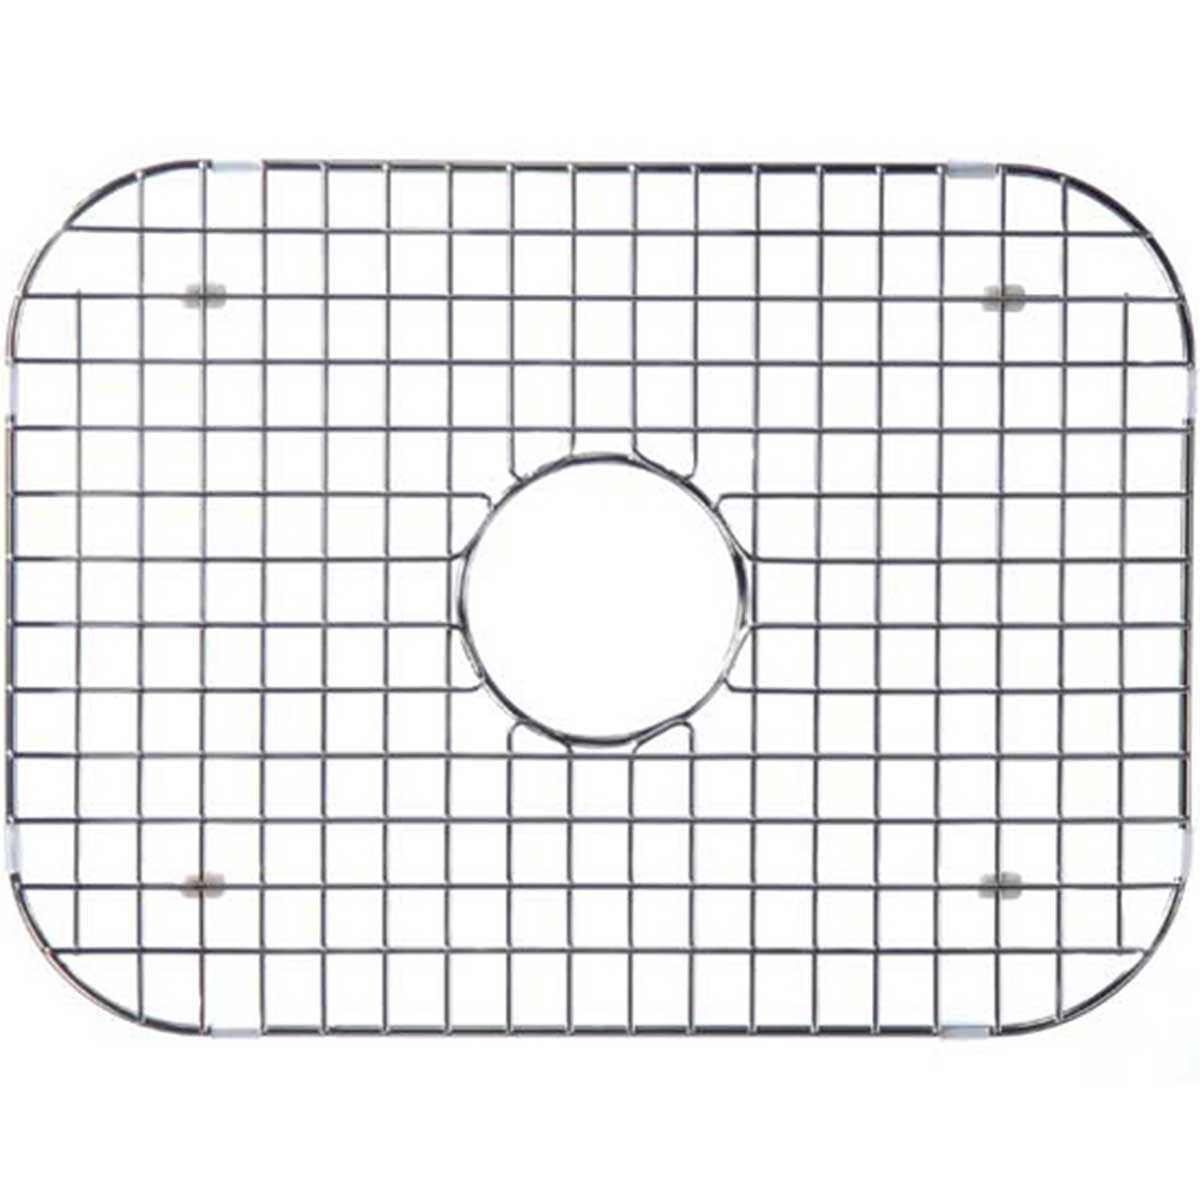 Artisan BG-18S Stainless Steel Kitchen Sink Grid